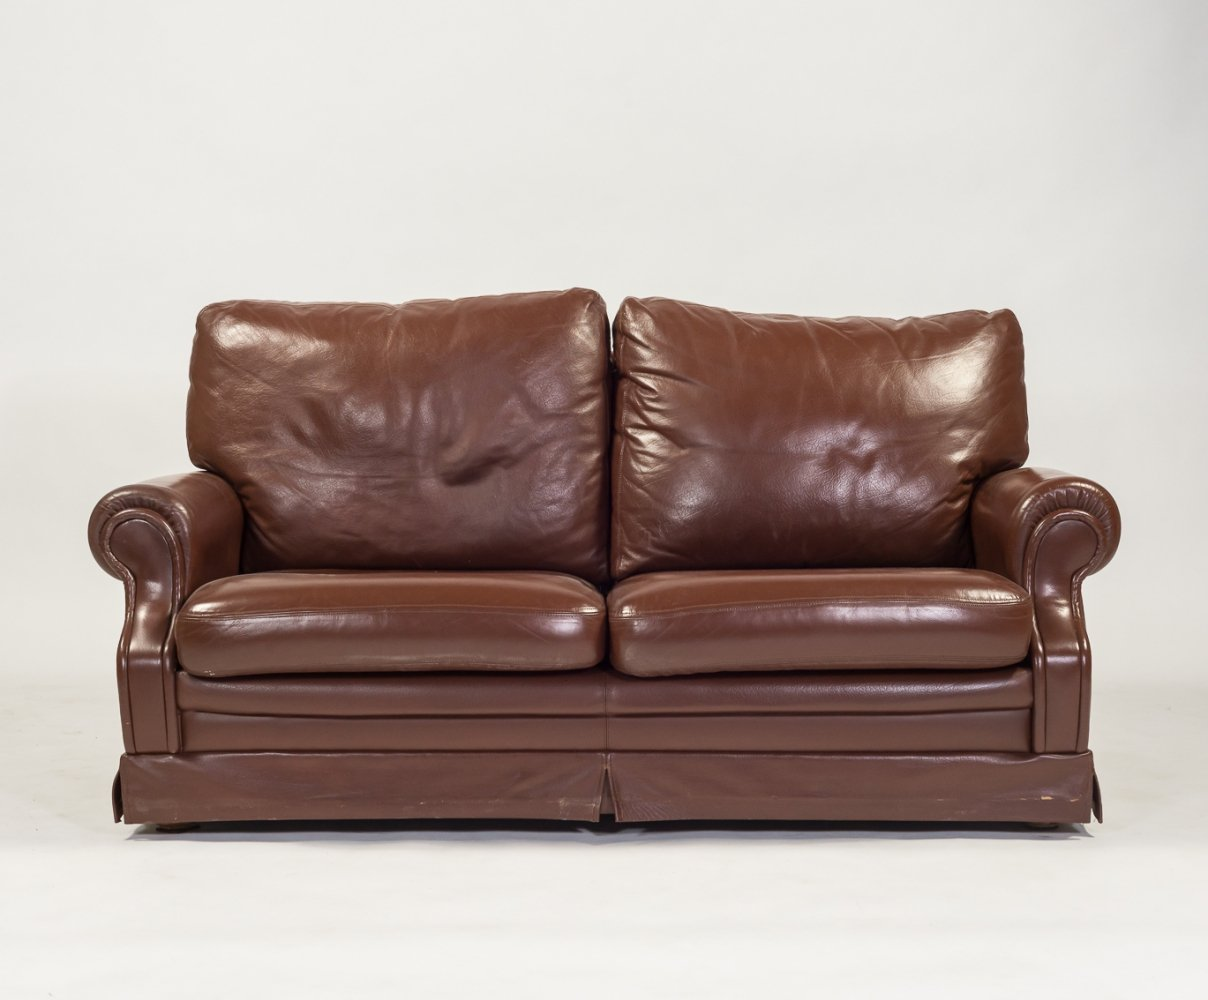 Italian design two seats sofa in brown leather, 1970